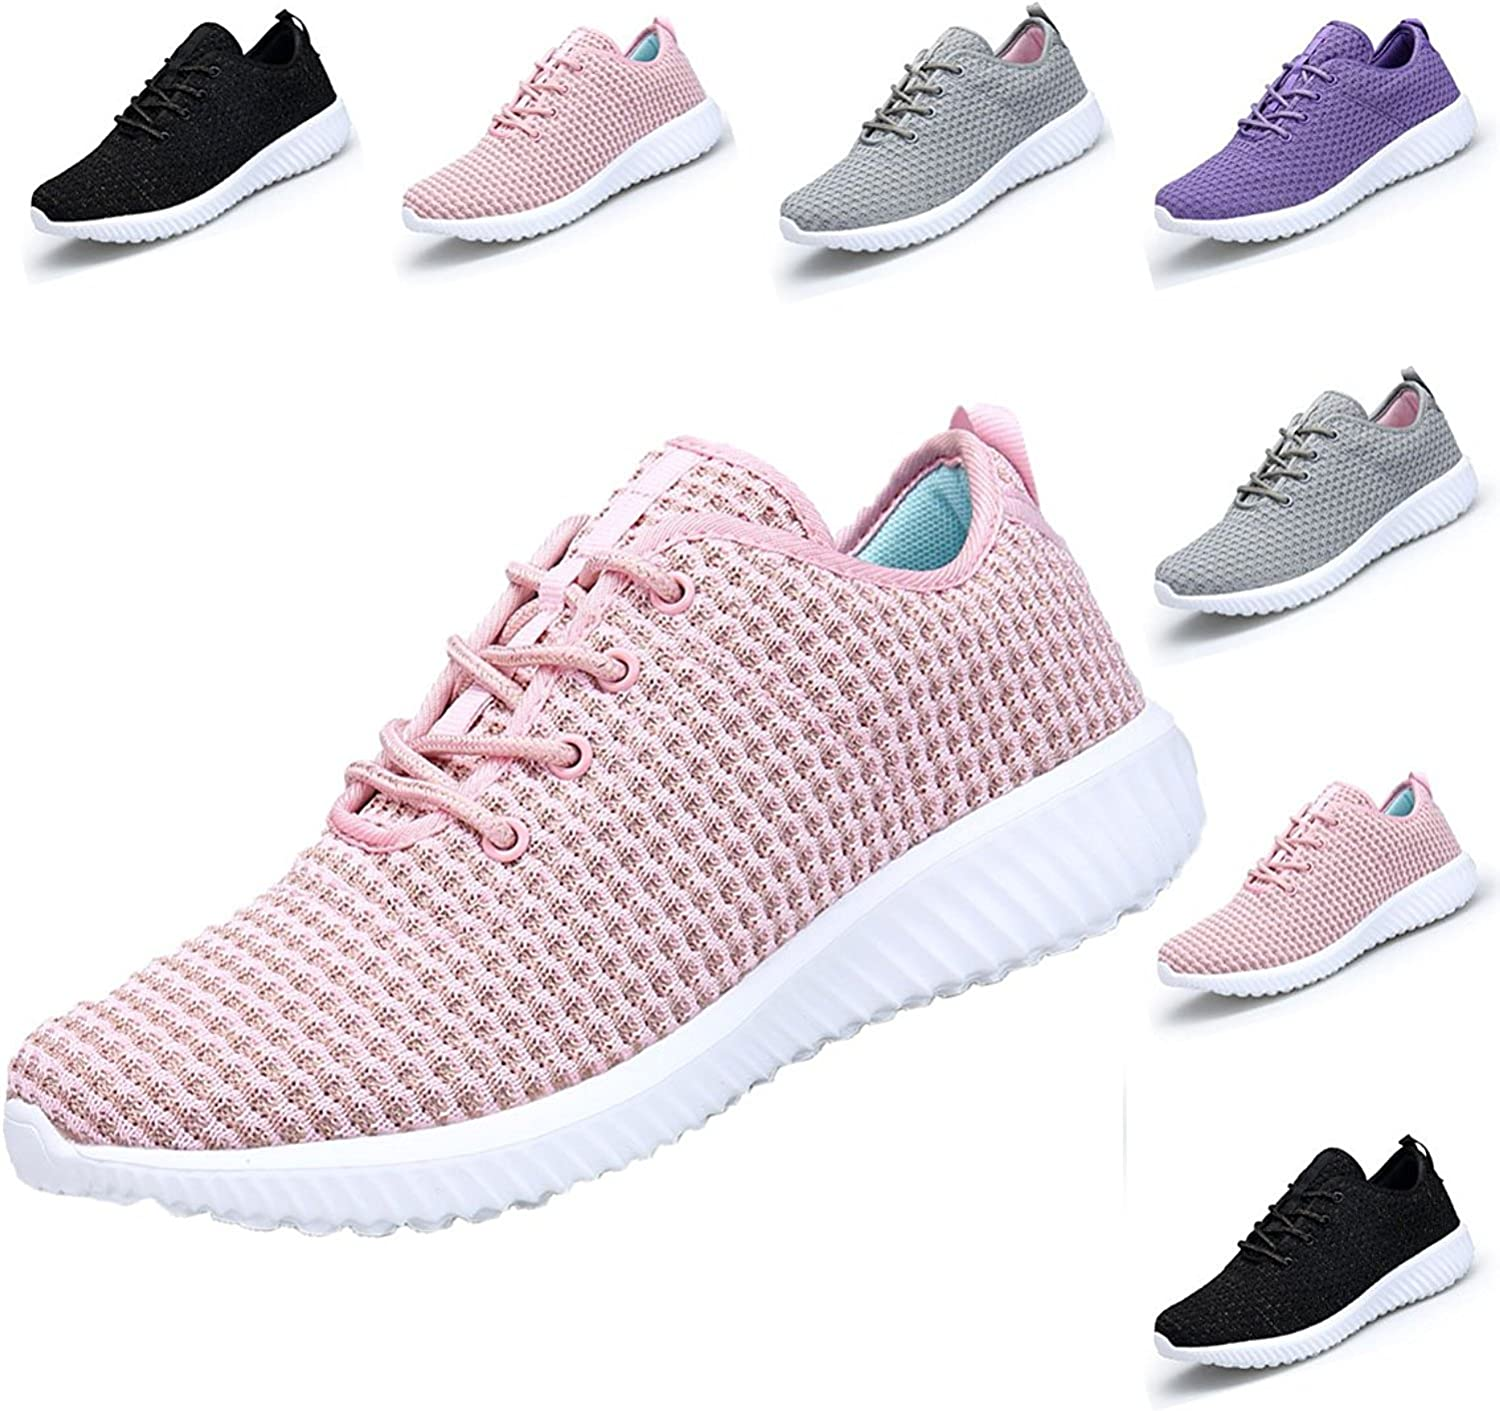 DOMOGO Kumikiwa Womens Sneakers Casual shoes Sport Running Breathable Walking shoes Plus Size